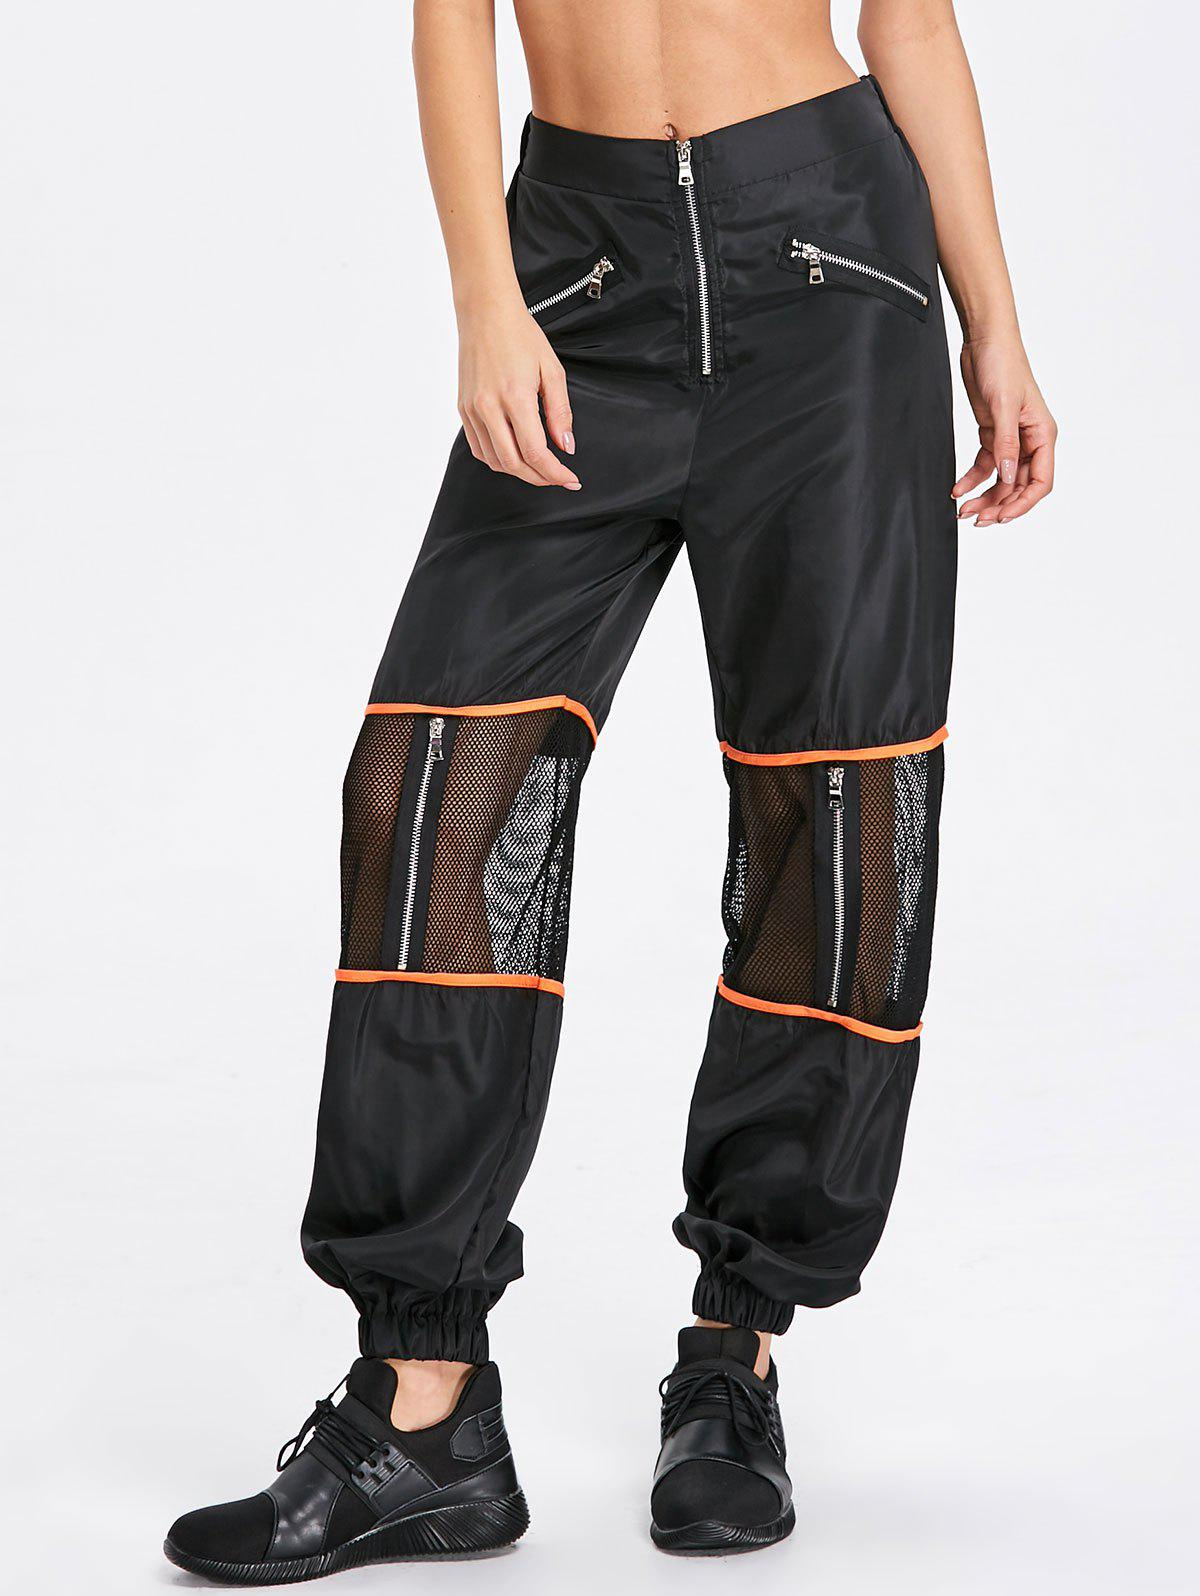 Hot Zipper Fly Mesh Insert Pants